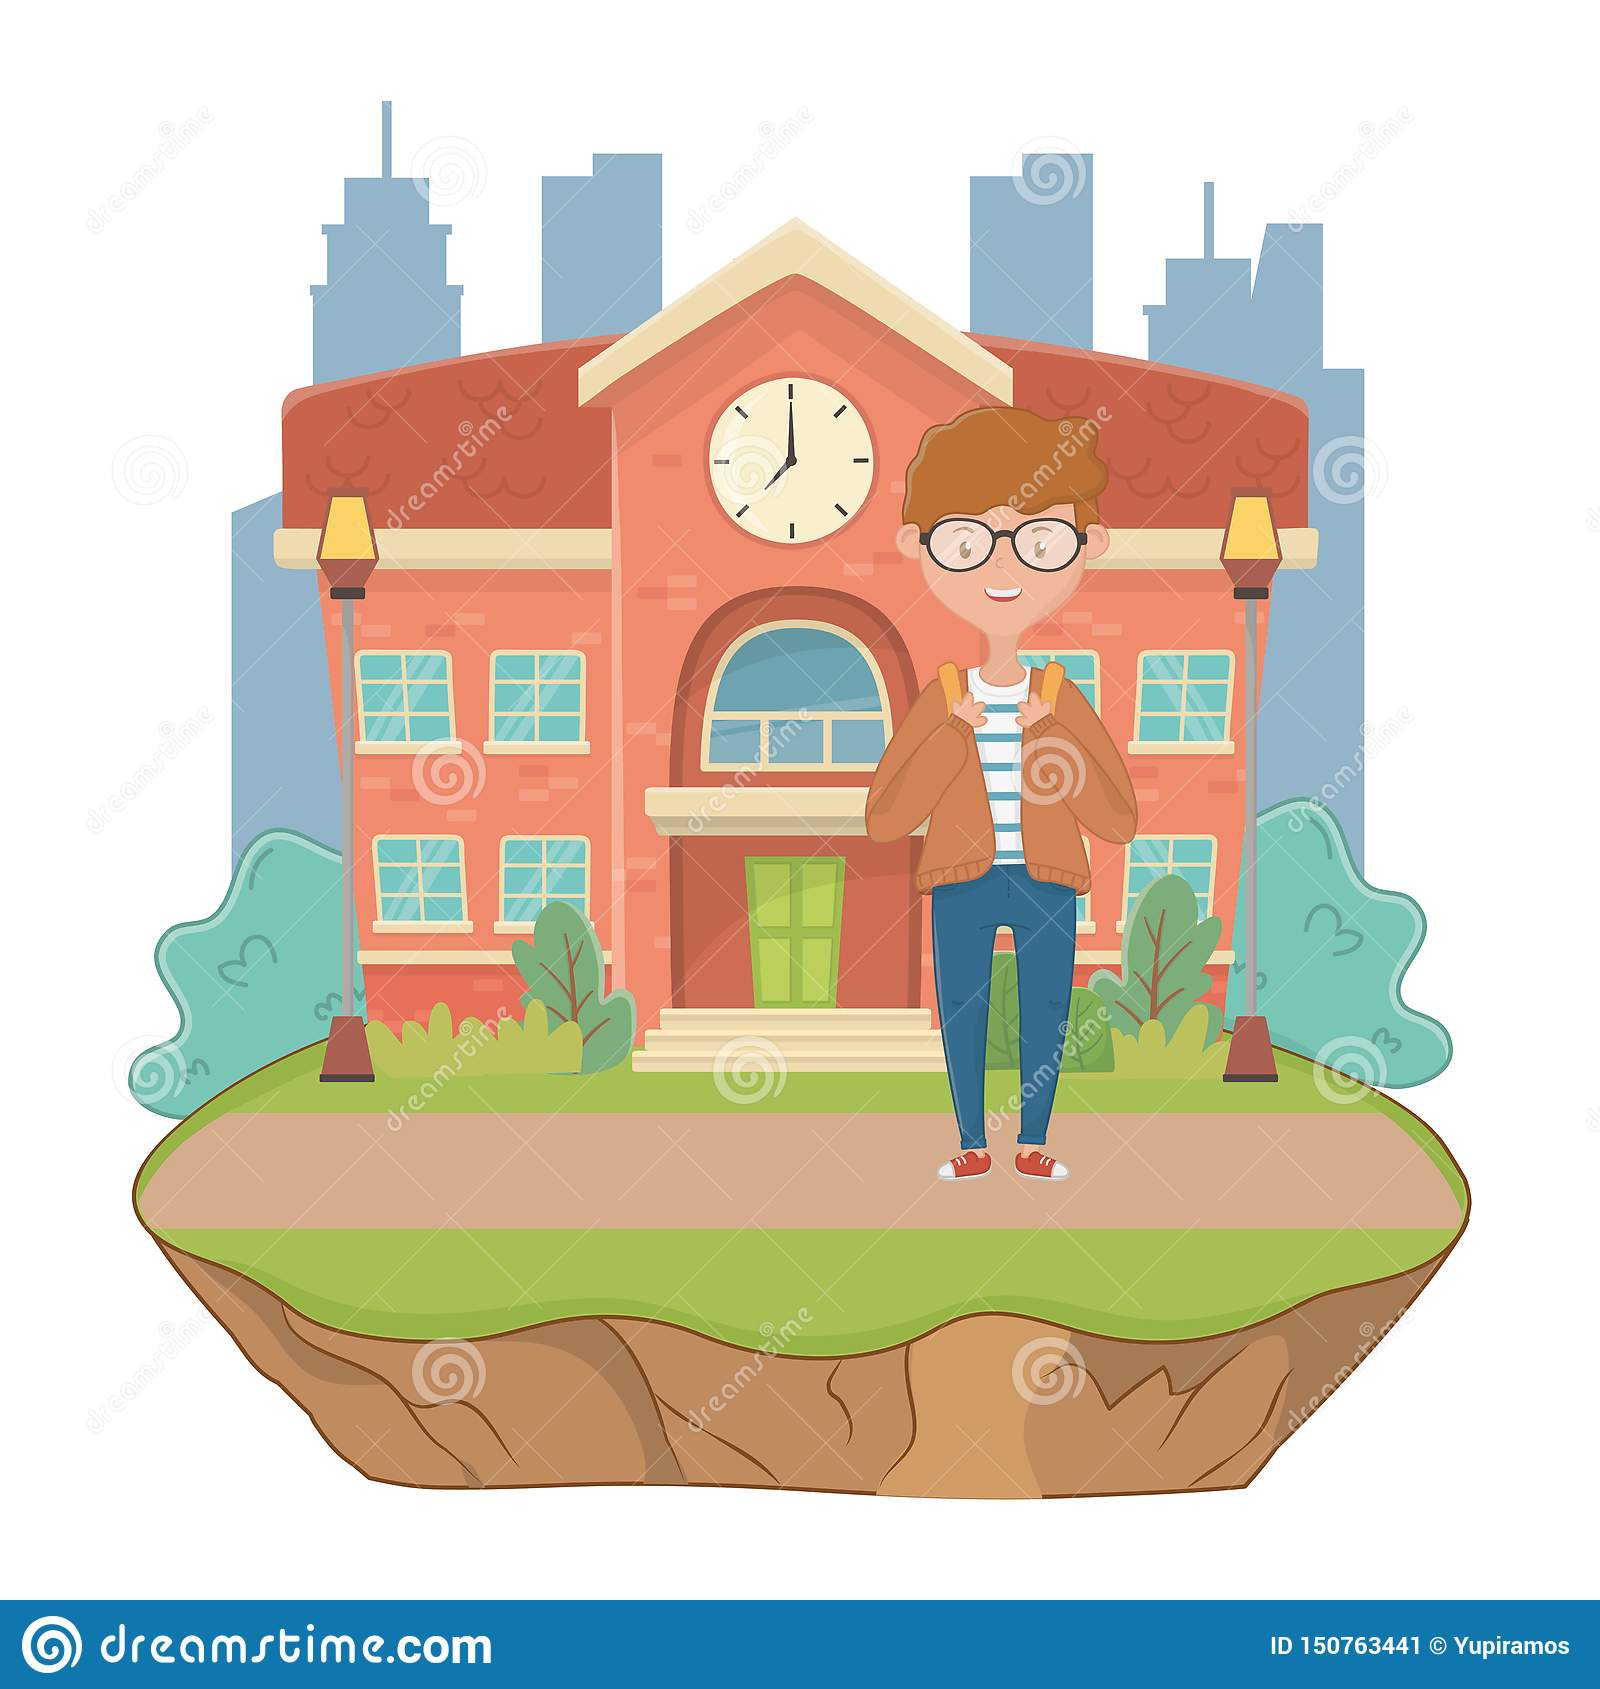 Boy cartoon of school design